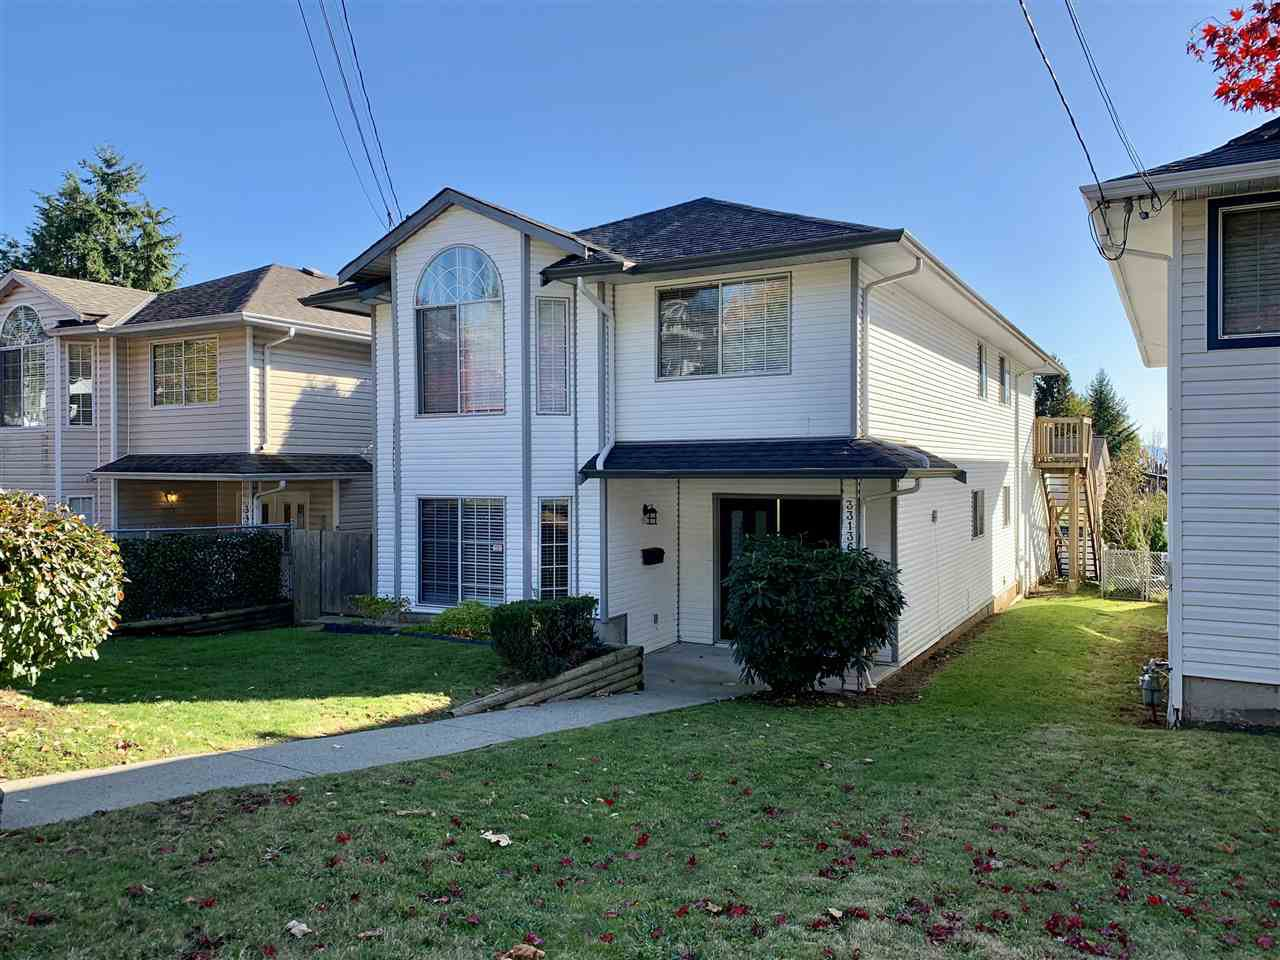 Main Photo: 33136 BEST AVENUE in Mission: Mission BC House for sale : MLS®# R2416401